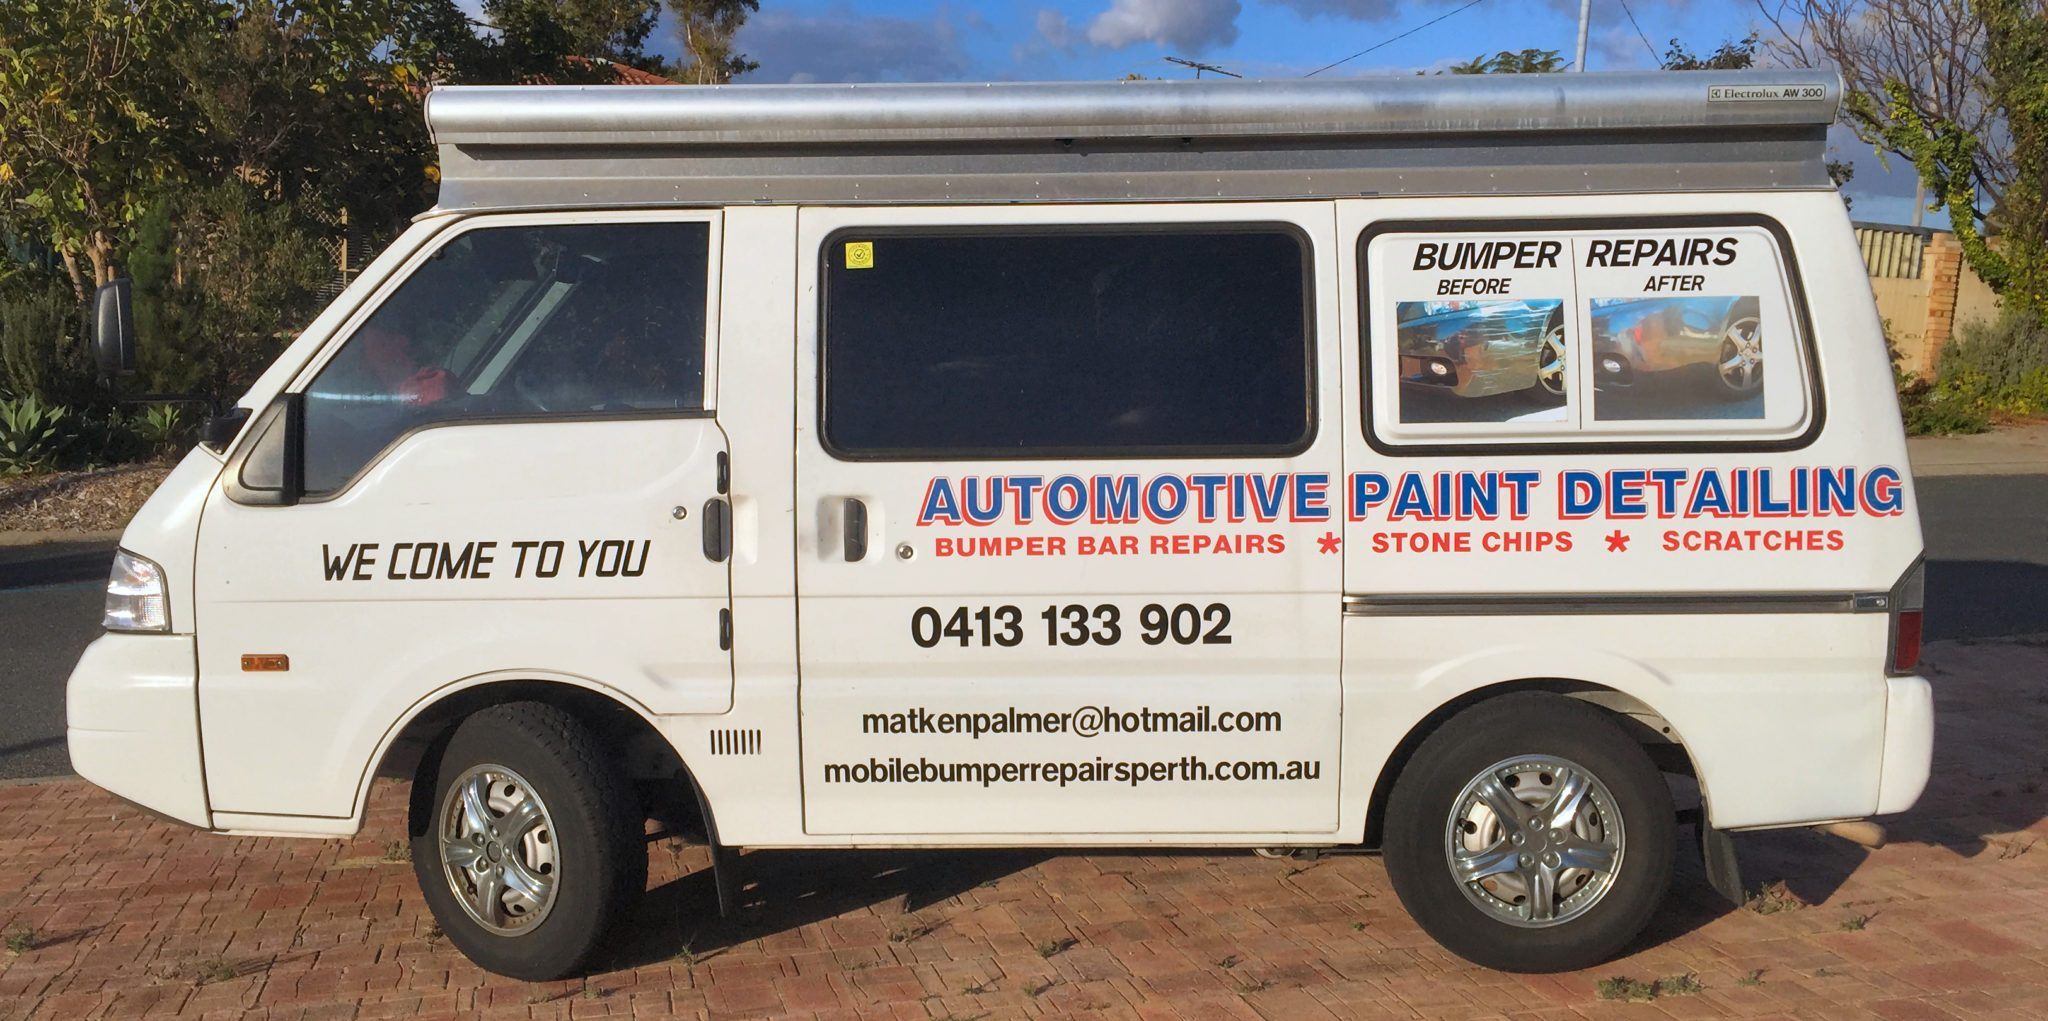 mobile bumper repairs van